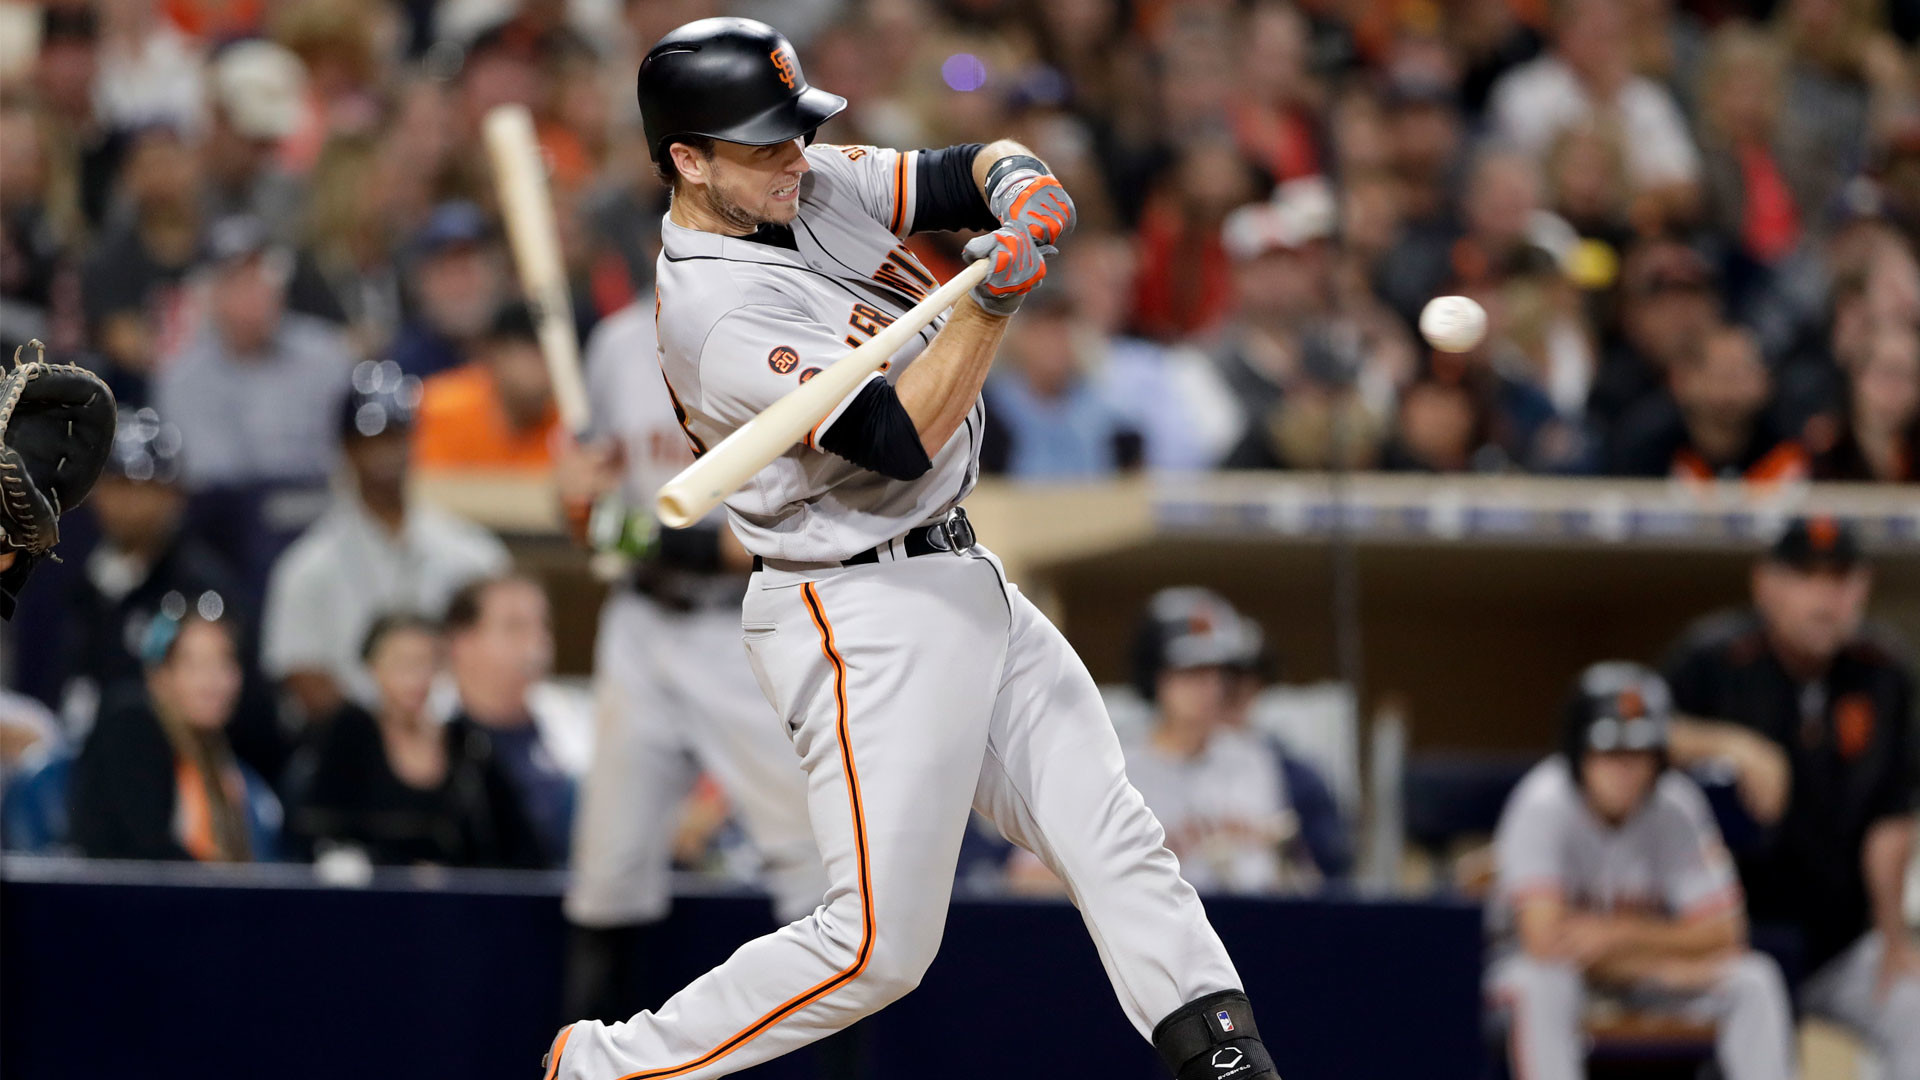 Giants catcher Buster Posey to play in World Baseball Classic | NBCS Bay  Area